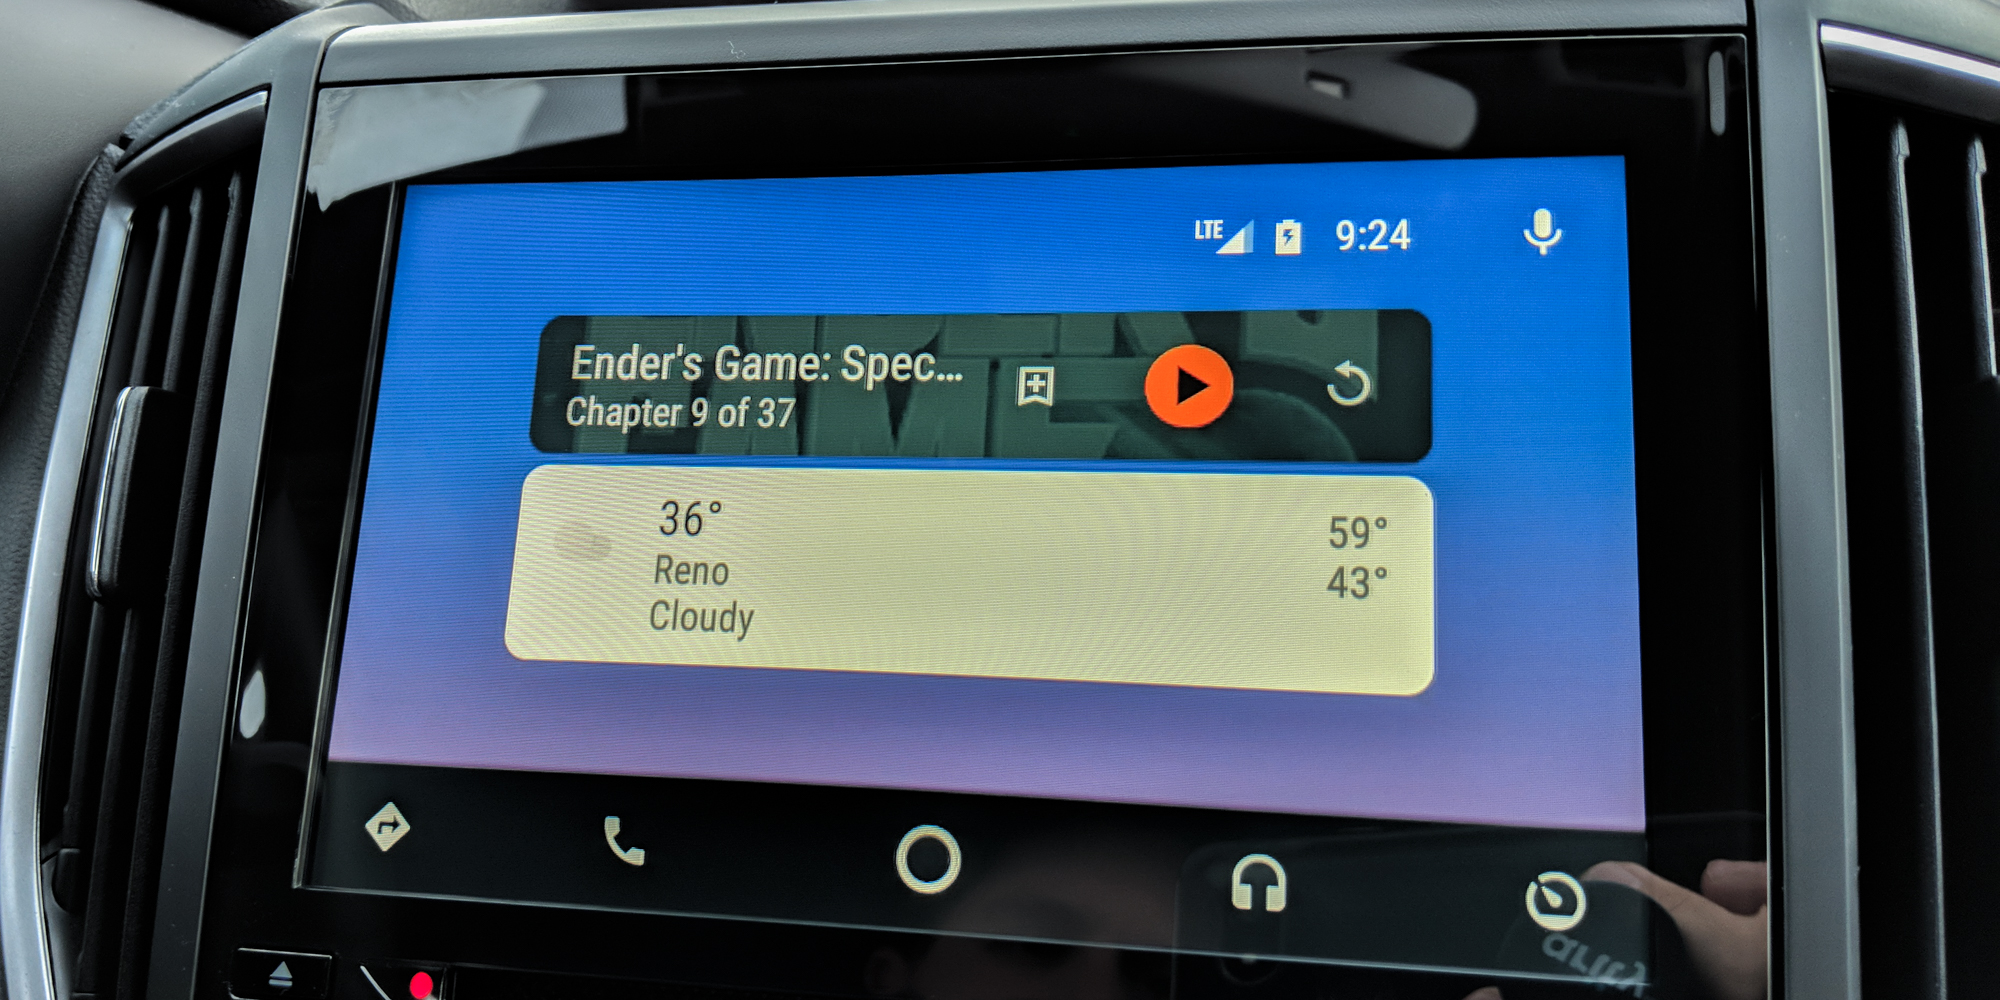 Android Auto gets minor user interface update with rounded icons